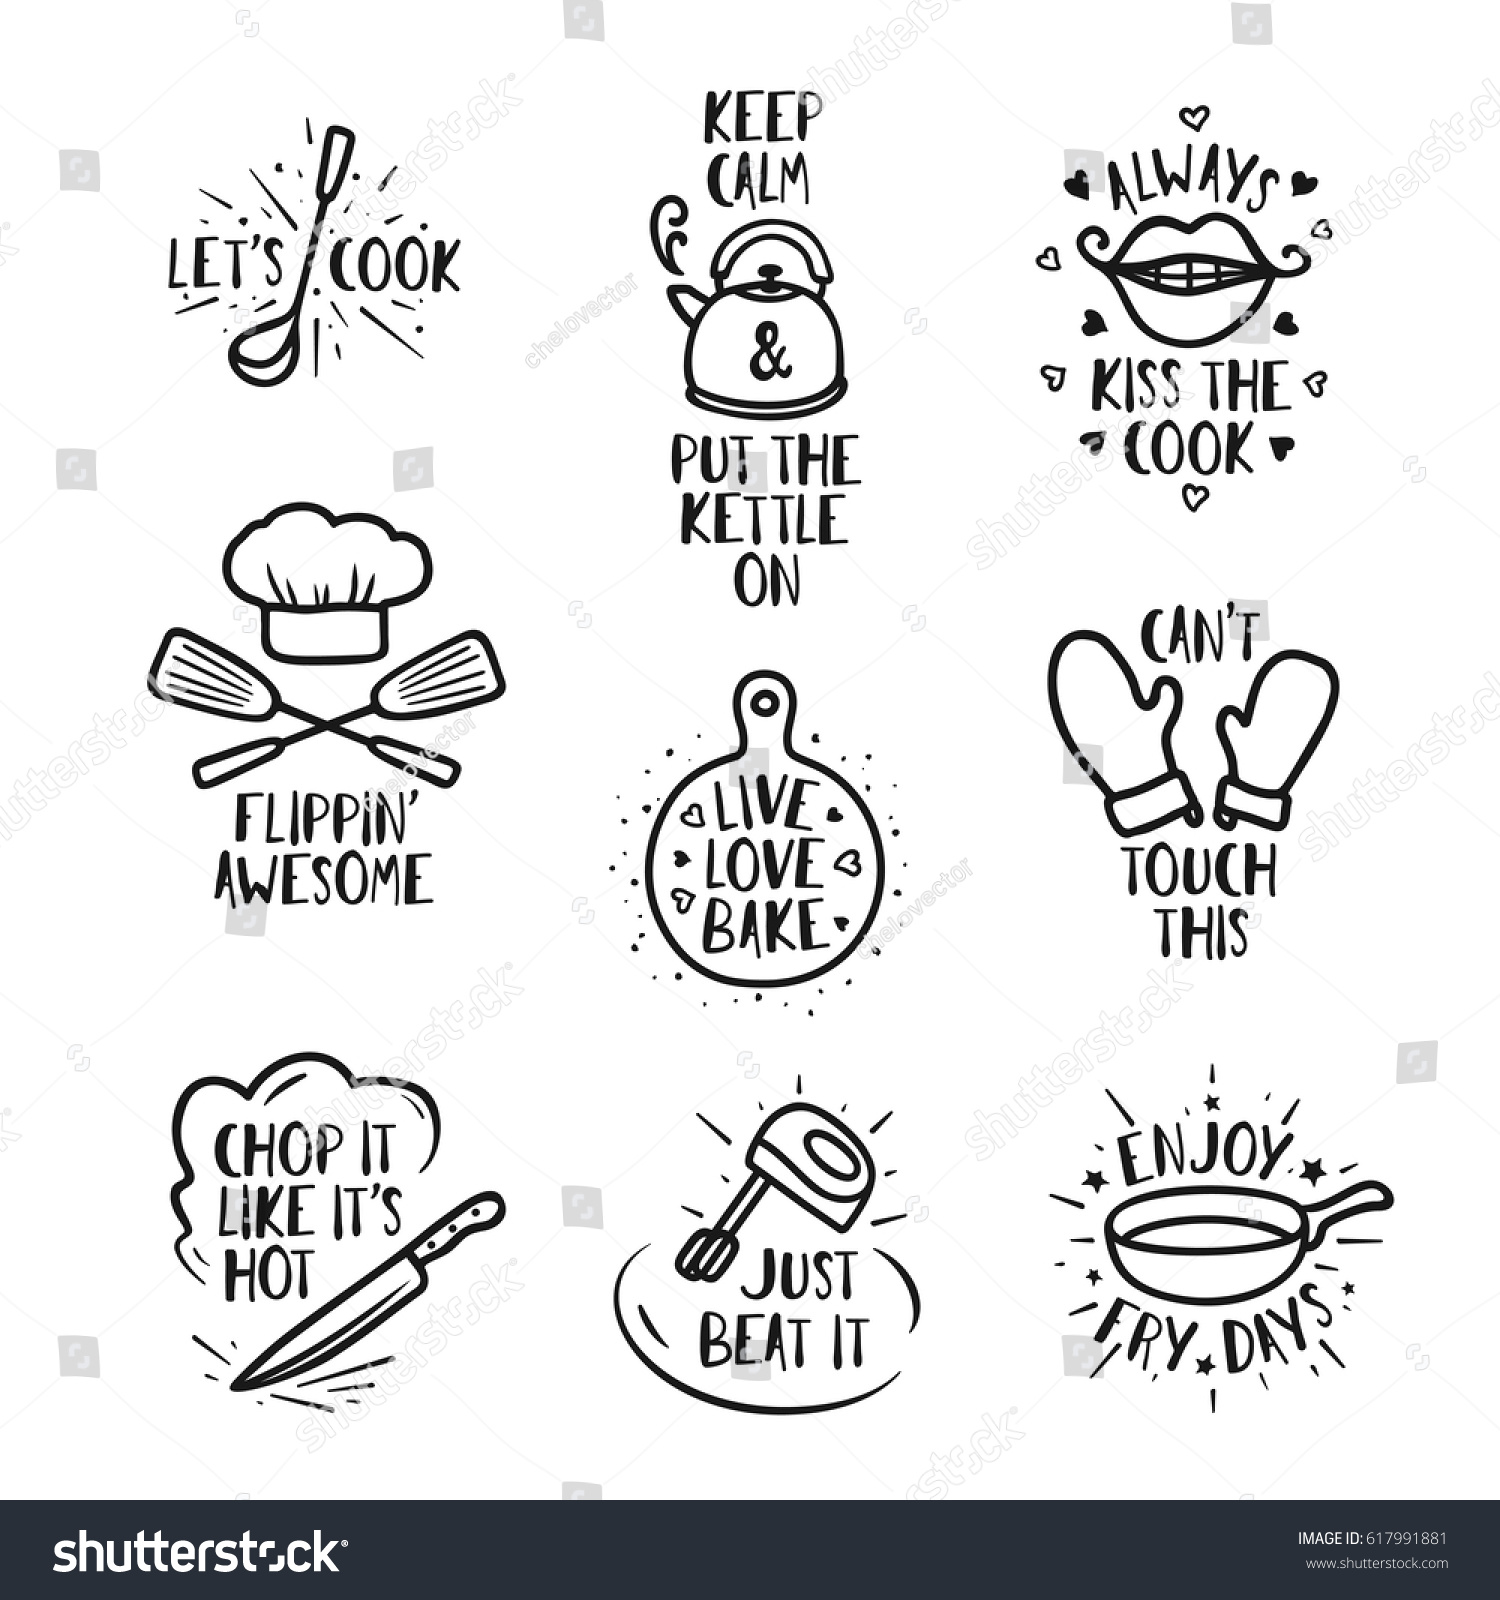 hand drawn kitchen quotes set phrases and funny sayings about cooking food wall decor - Funny Kitchen Quotes